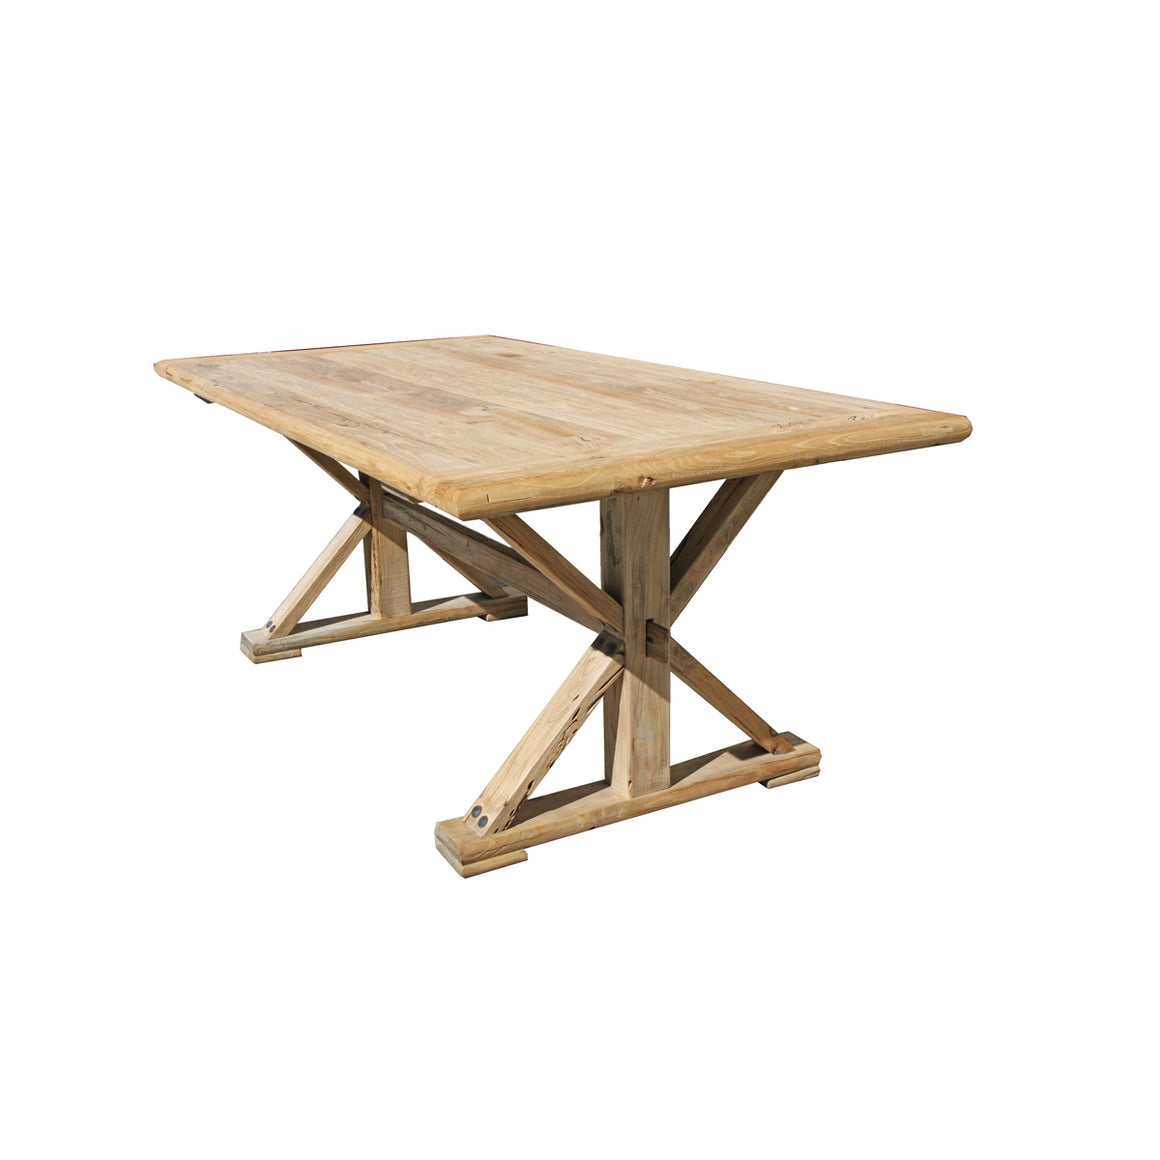 Elm dining table  2.4 x 1 m